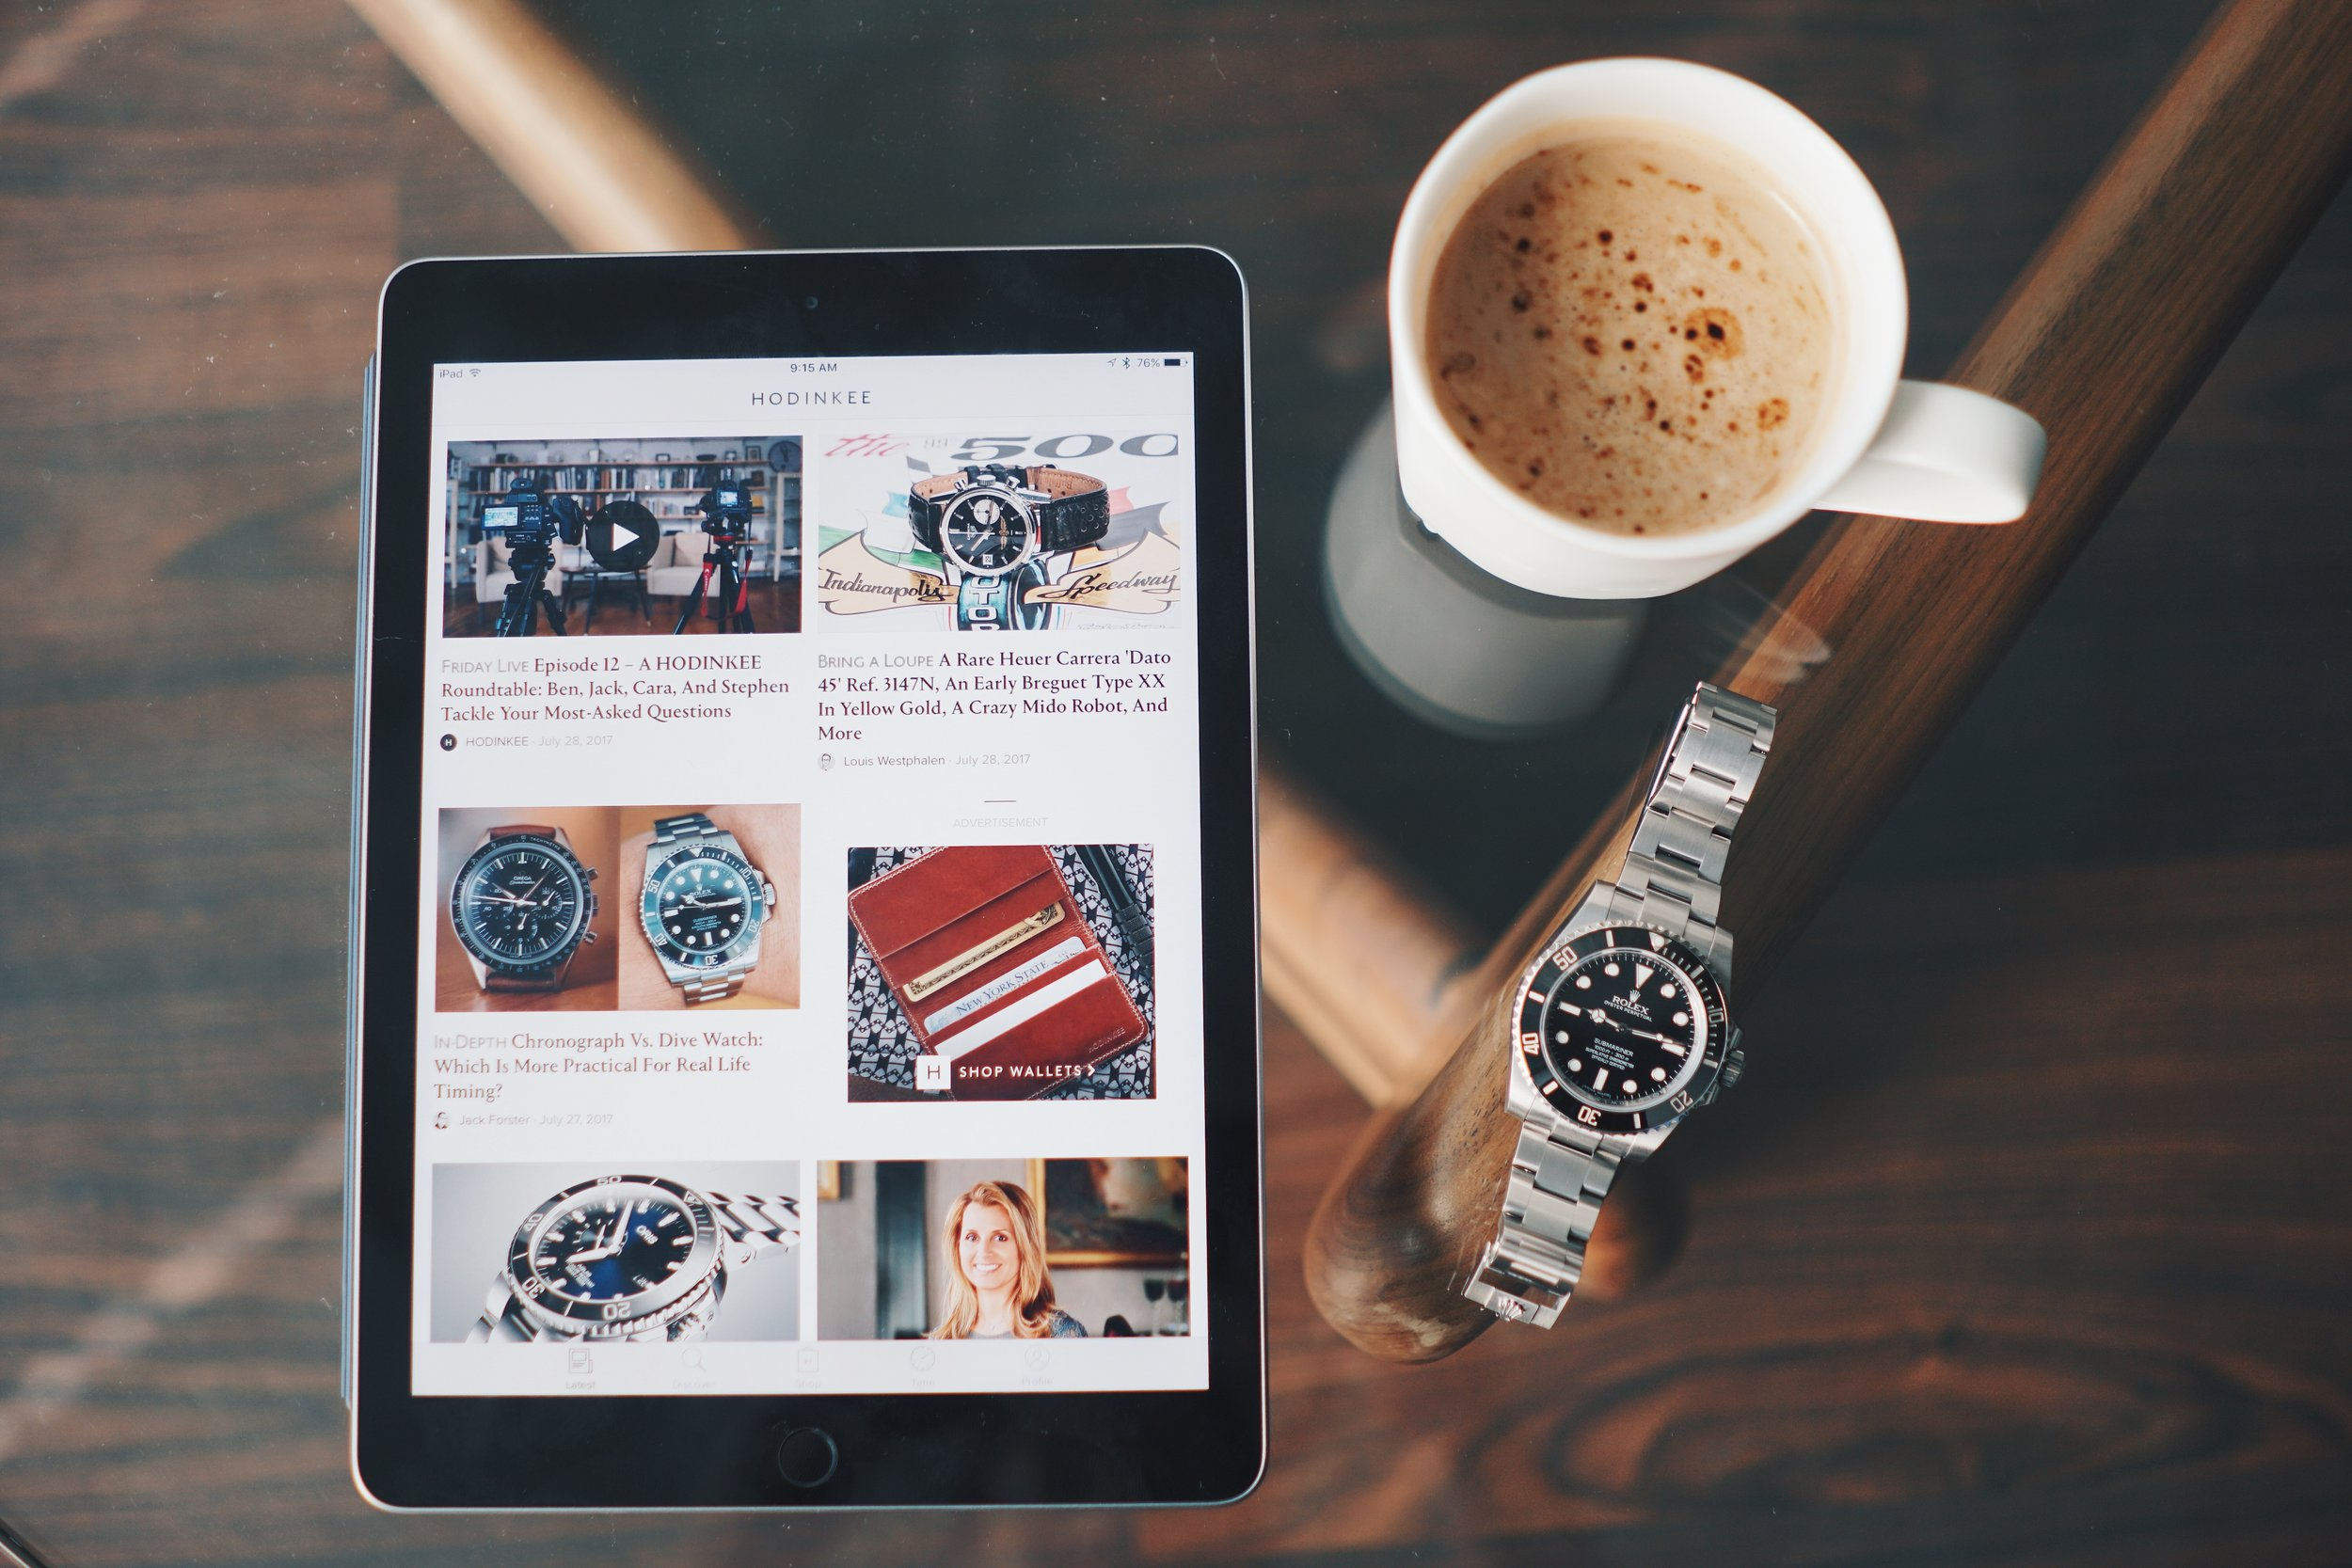 Hodinkee App on iPad